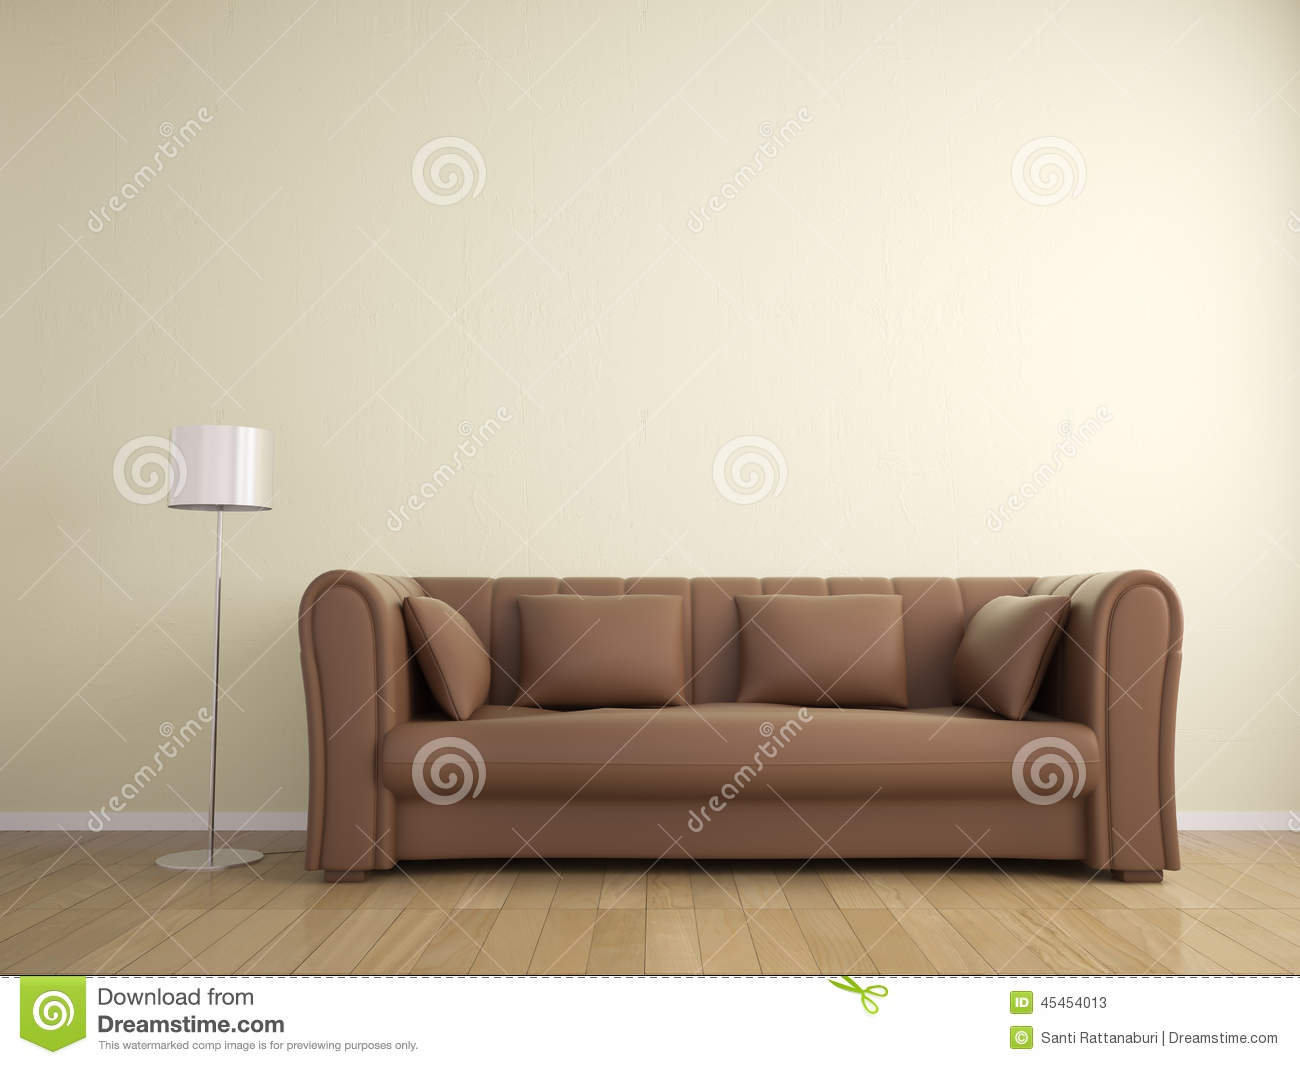 Stock photos: sofa and lamp wall beige color, interior. image ...